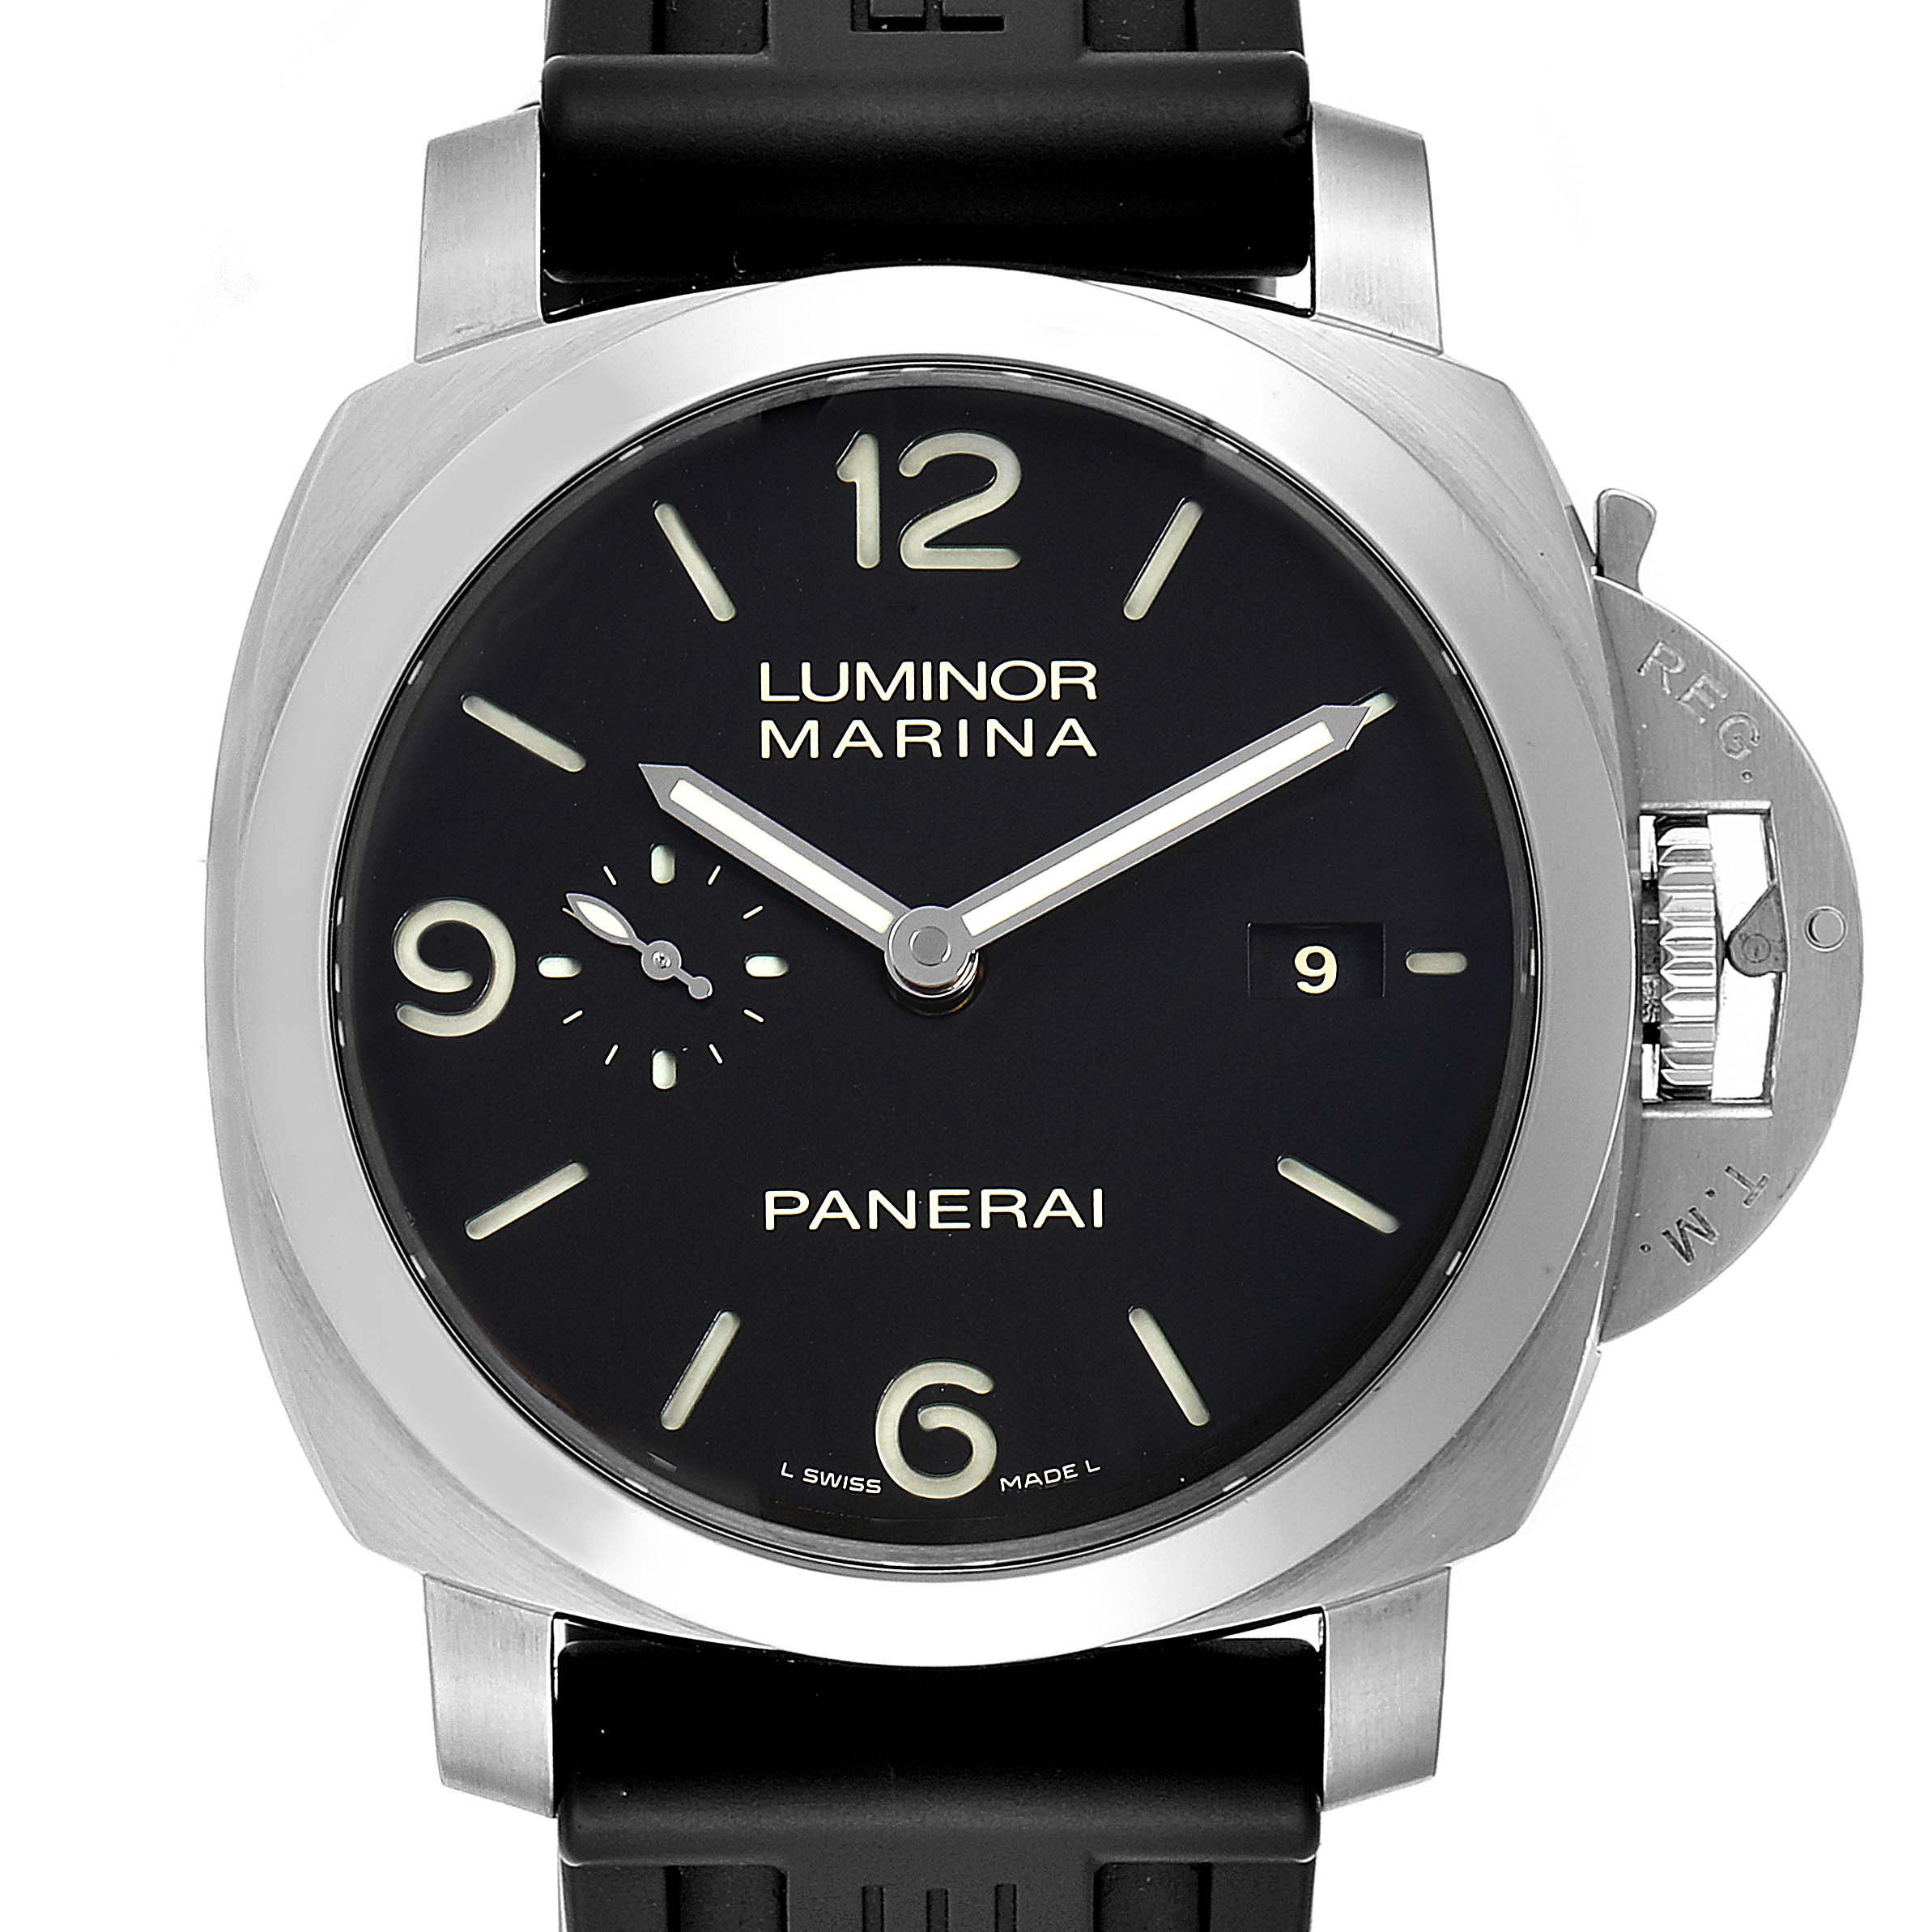 Panerai Luminor 1950 Marina Mens 44mm Watch PAM00312 Box Papers